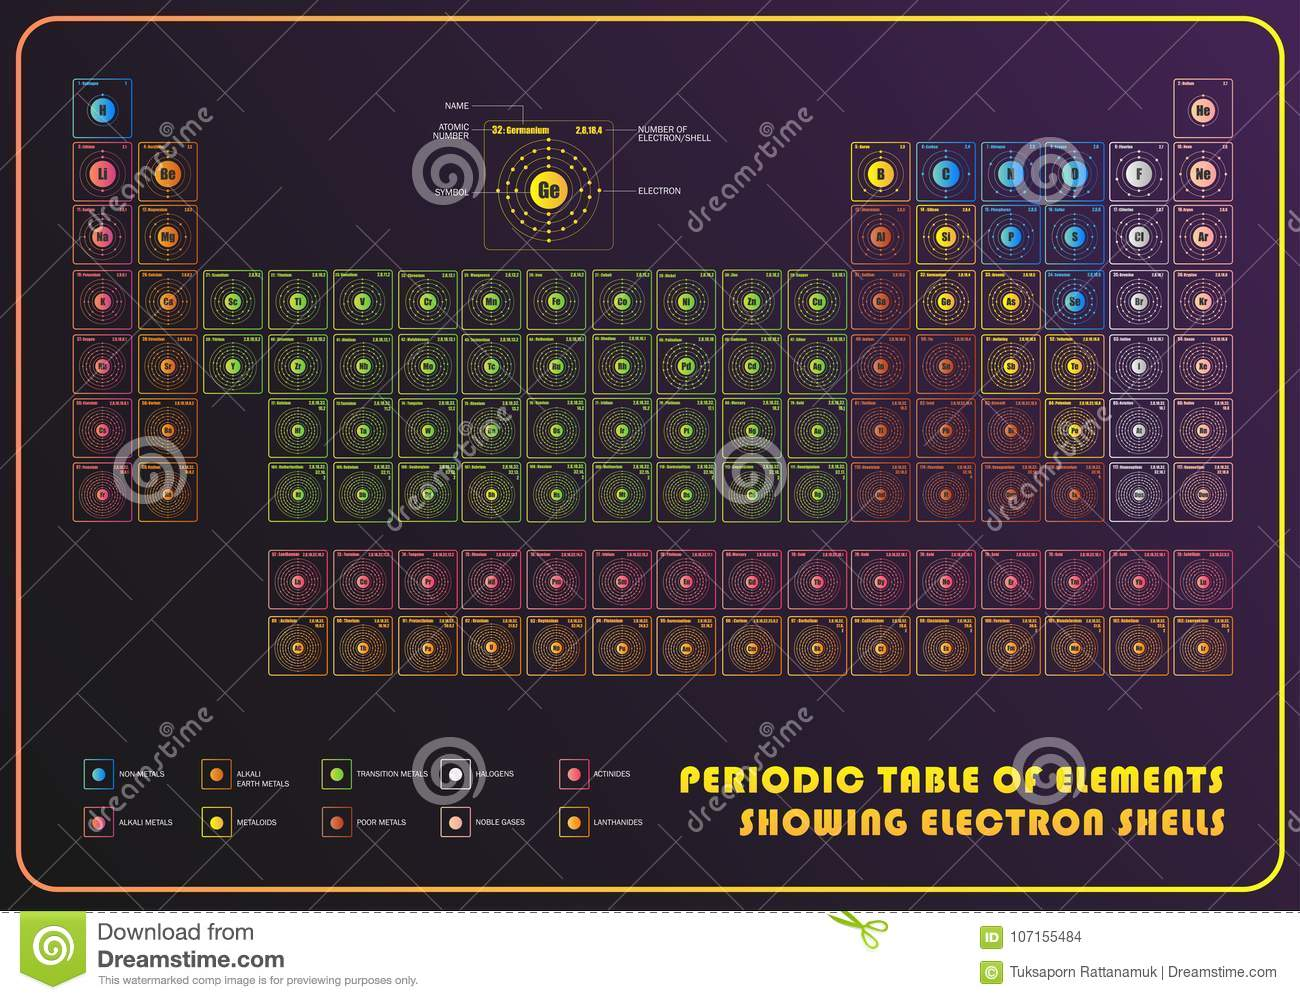 periodic table of element showing electron shells graphic conductivity - Periodic Table Of Elements Showing Electron Shells